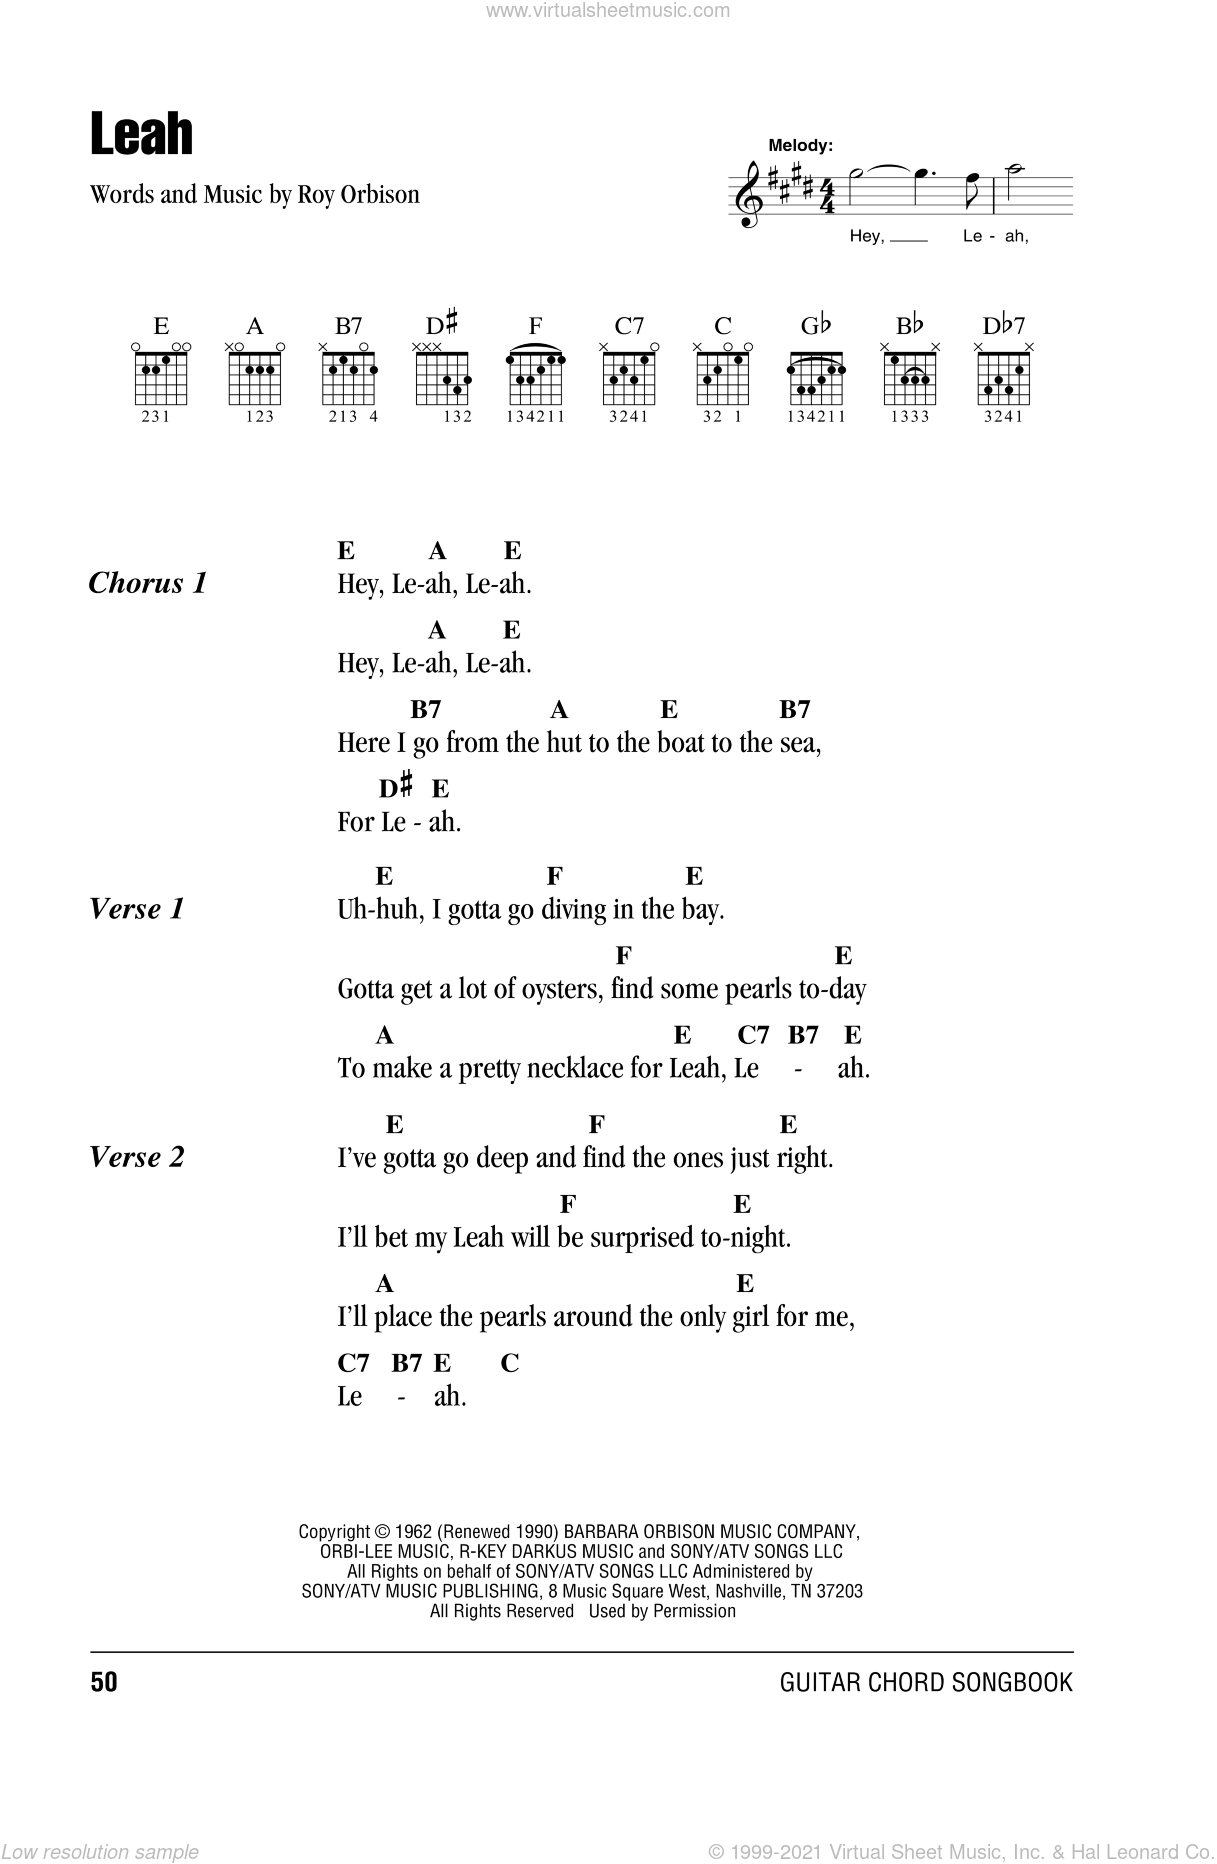 Orbison - Leah sheet music for guitar (chords) [PDF]